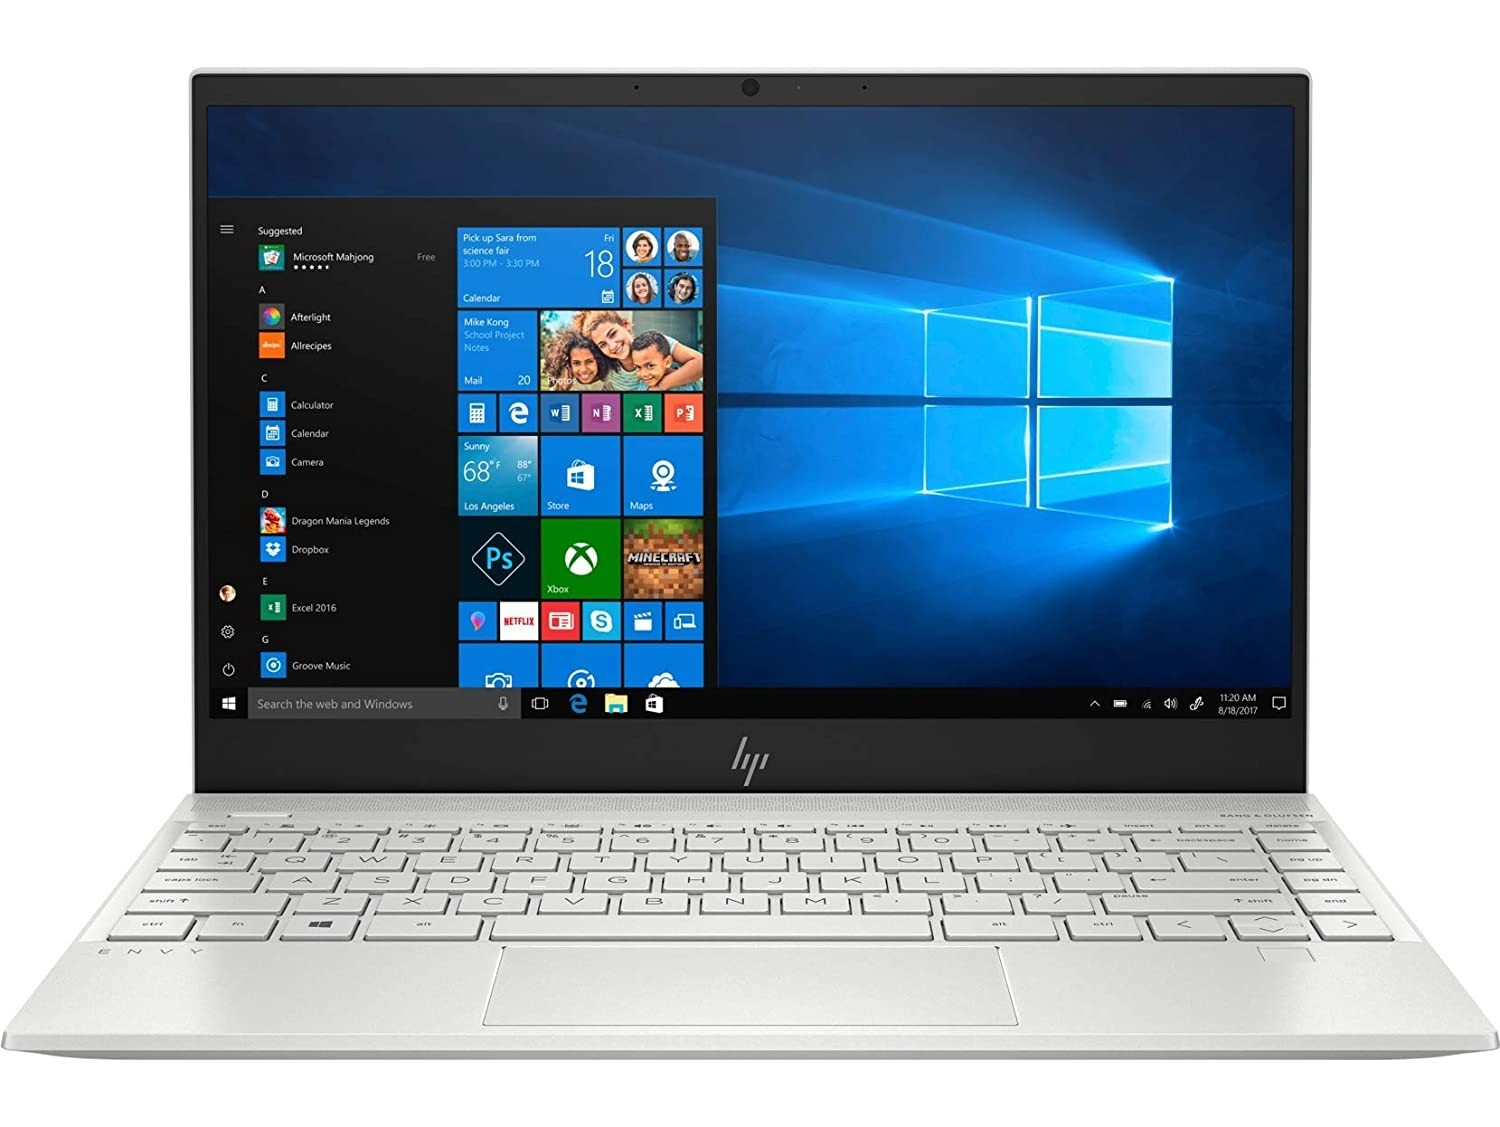 Refurbished laptops & desktops - HP Envy 13-ba0003tu Thin and Light Laptop (Core i5 10th Gen/8 GB/512 GB SSD/Windows 10 Home/MSO H & S 2019/13.3 inch/Natural Silver)